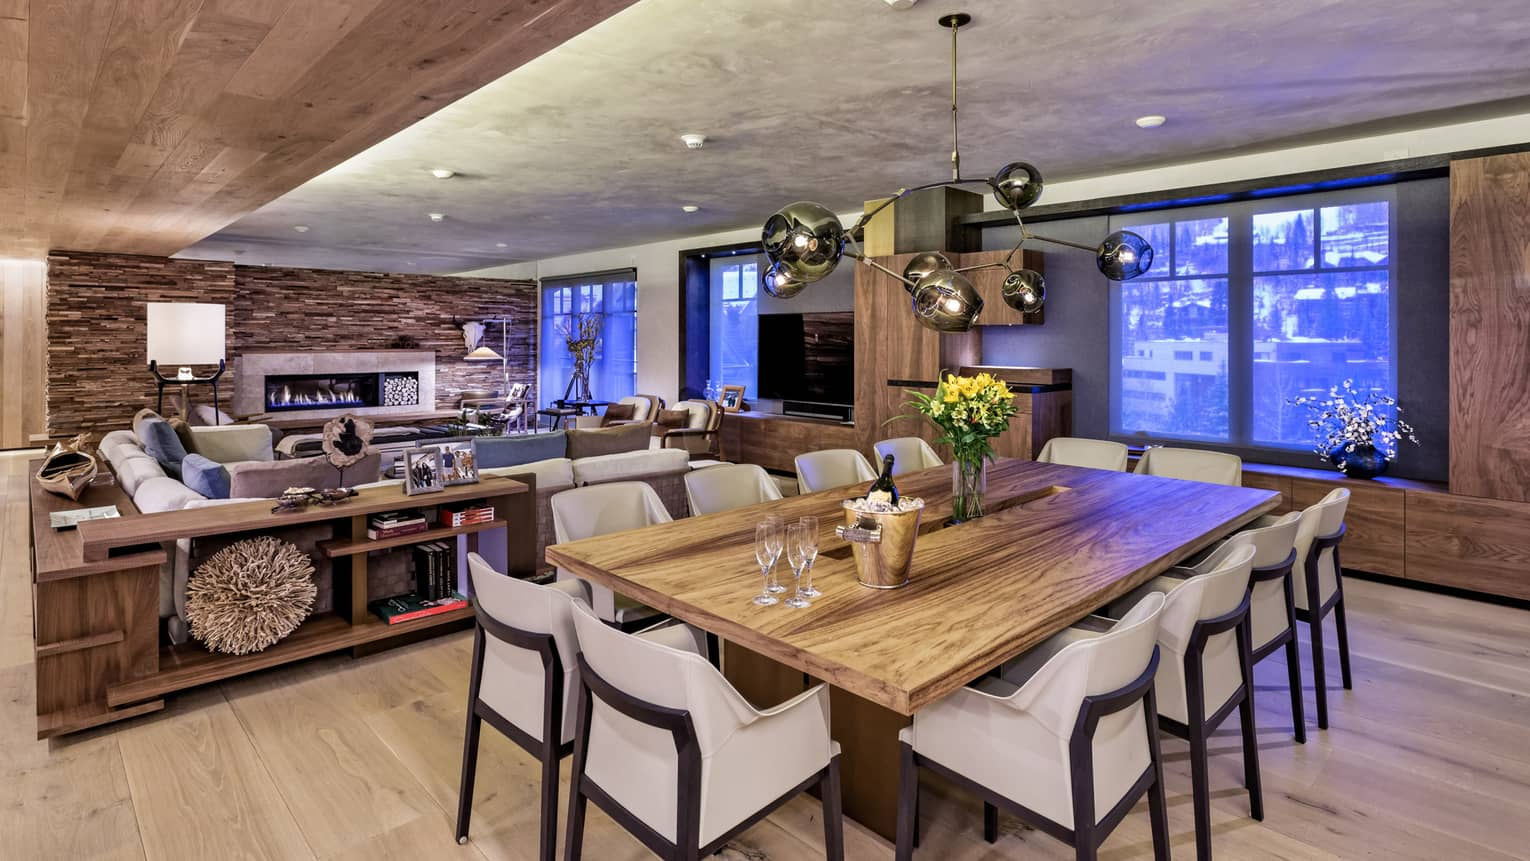 Modern wood farm-style dining table lined with white chairs, Champagne on ice, in front of living room